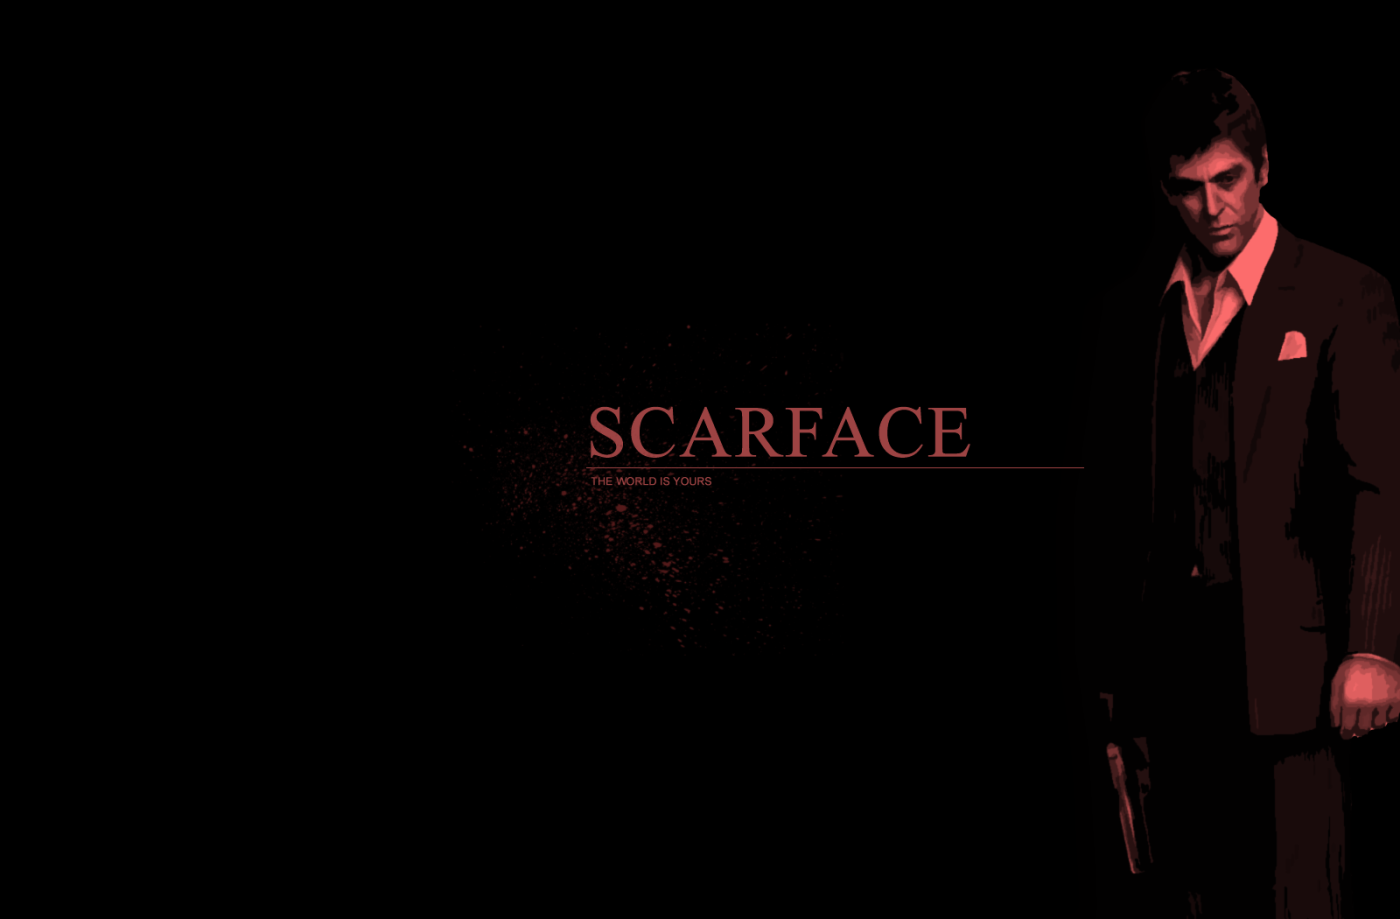 Scarface Wallpaper For Bedroom